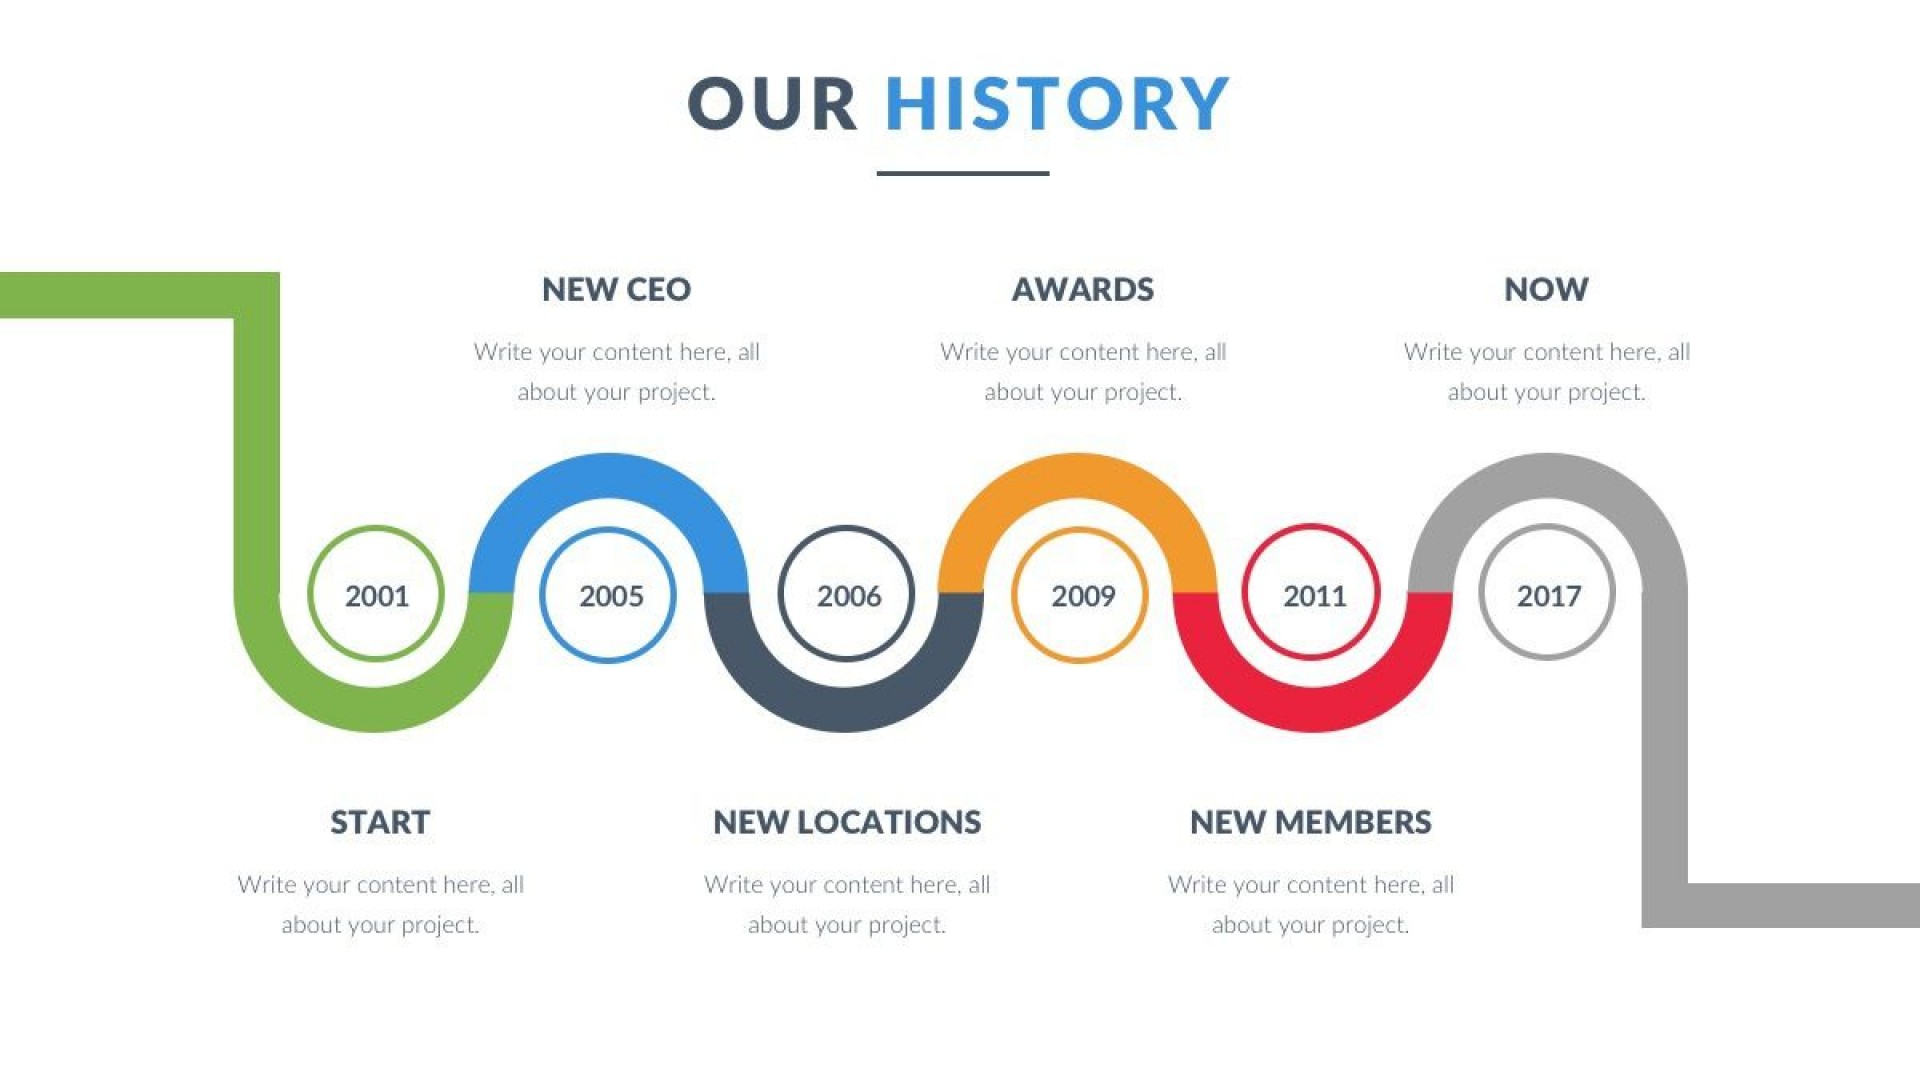 009 Rare Timeline Sample For Ppt Design  Powerpoint Template 2010 Example1920